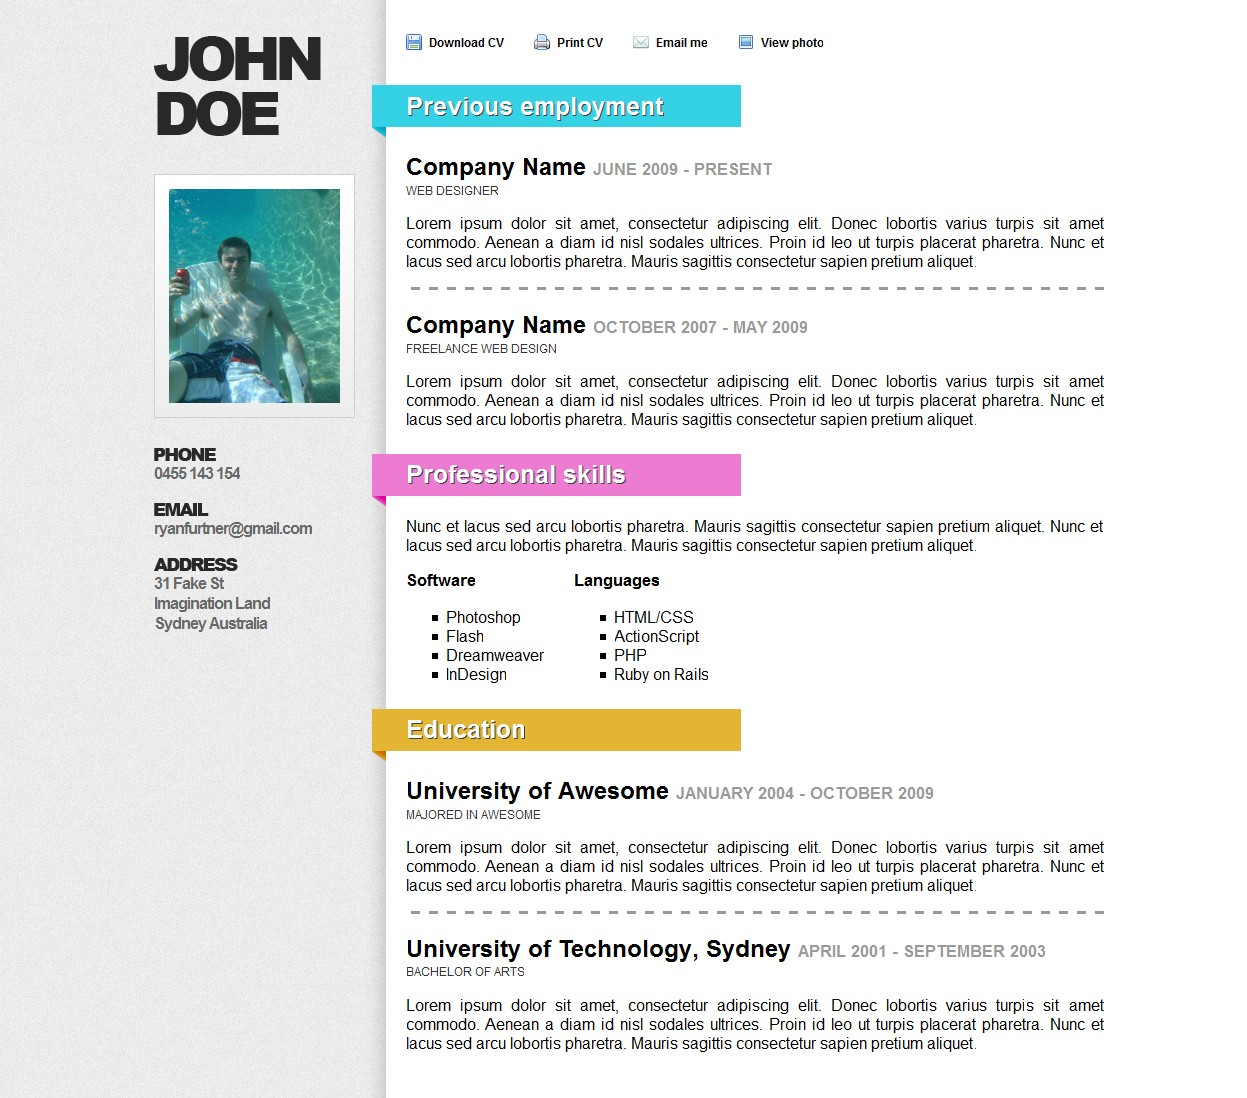 free online resume templates. create professional resumes online for ...